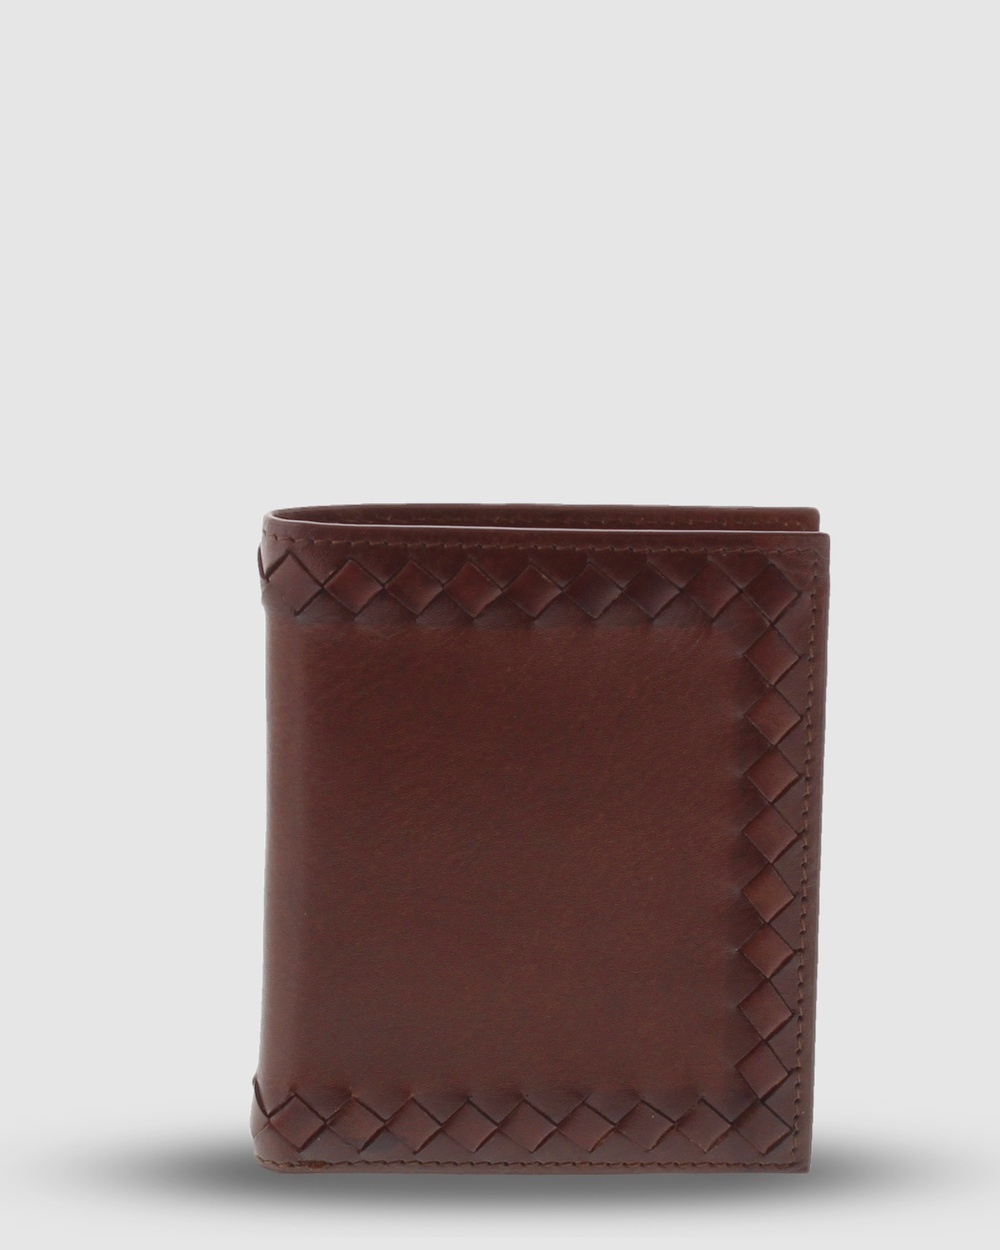 Cobb & Co Leo RFID Bifold Leather Wallet Wallets Brown